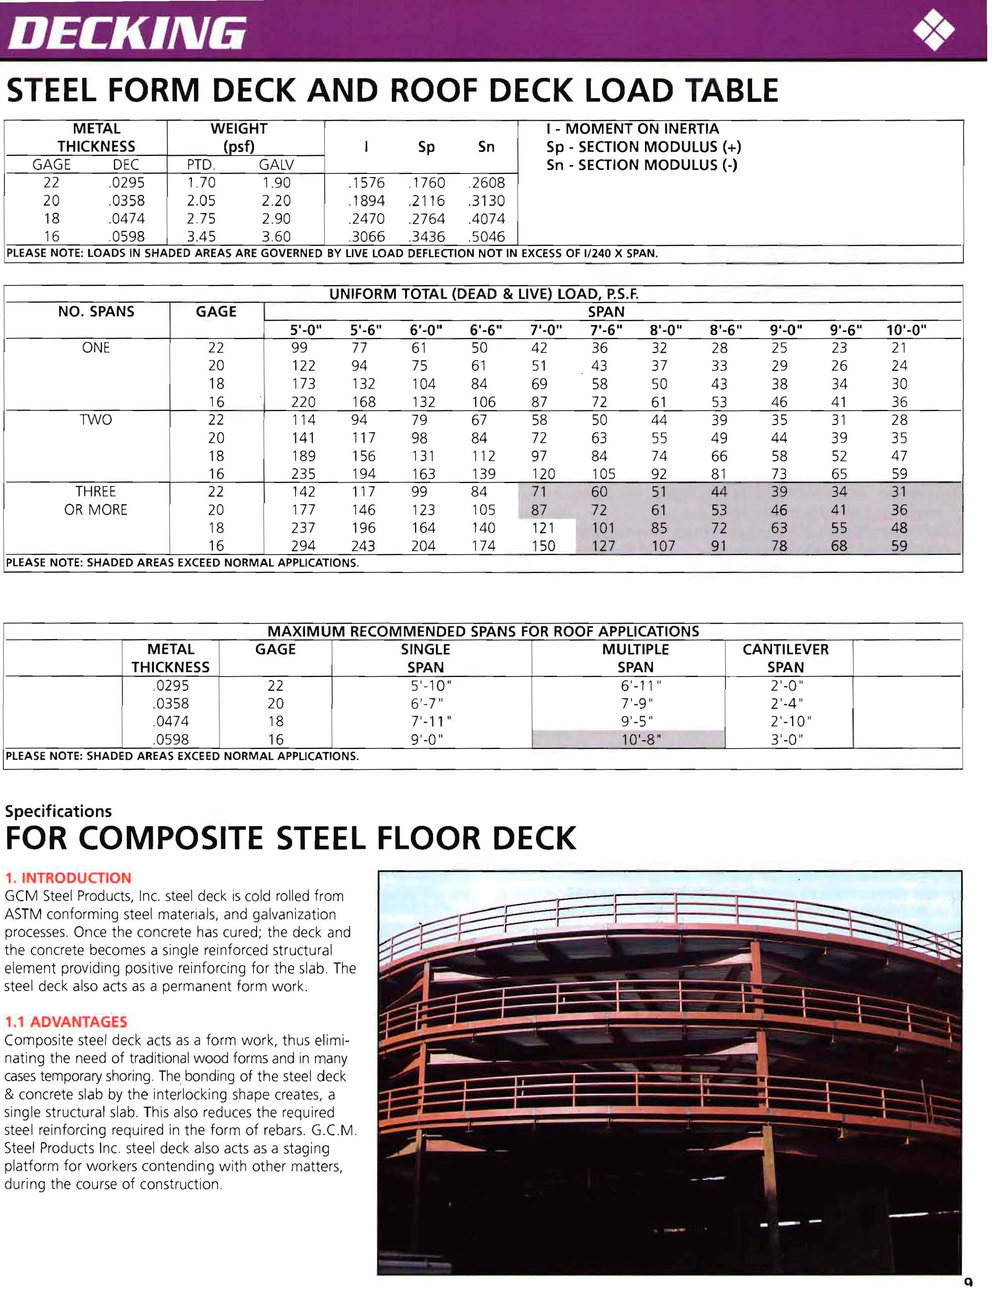 GCM-STEEL-Deck-Cut-Sheets-4.jpg